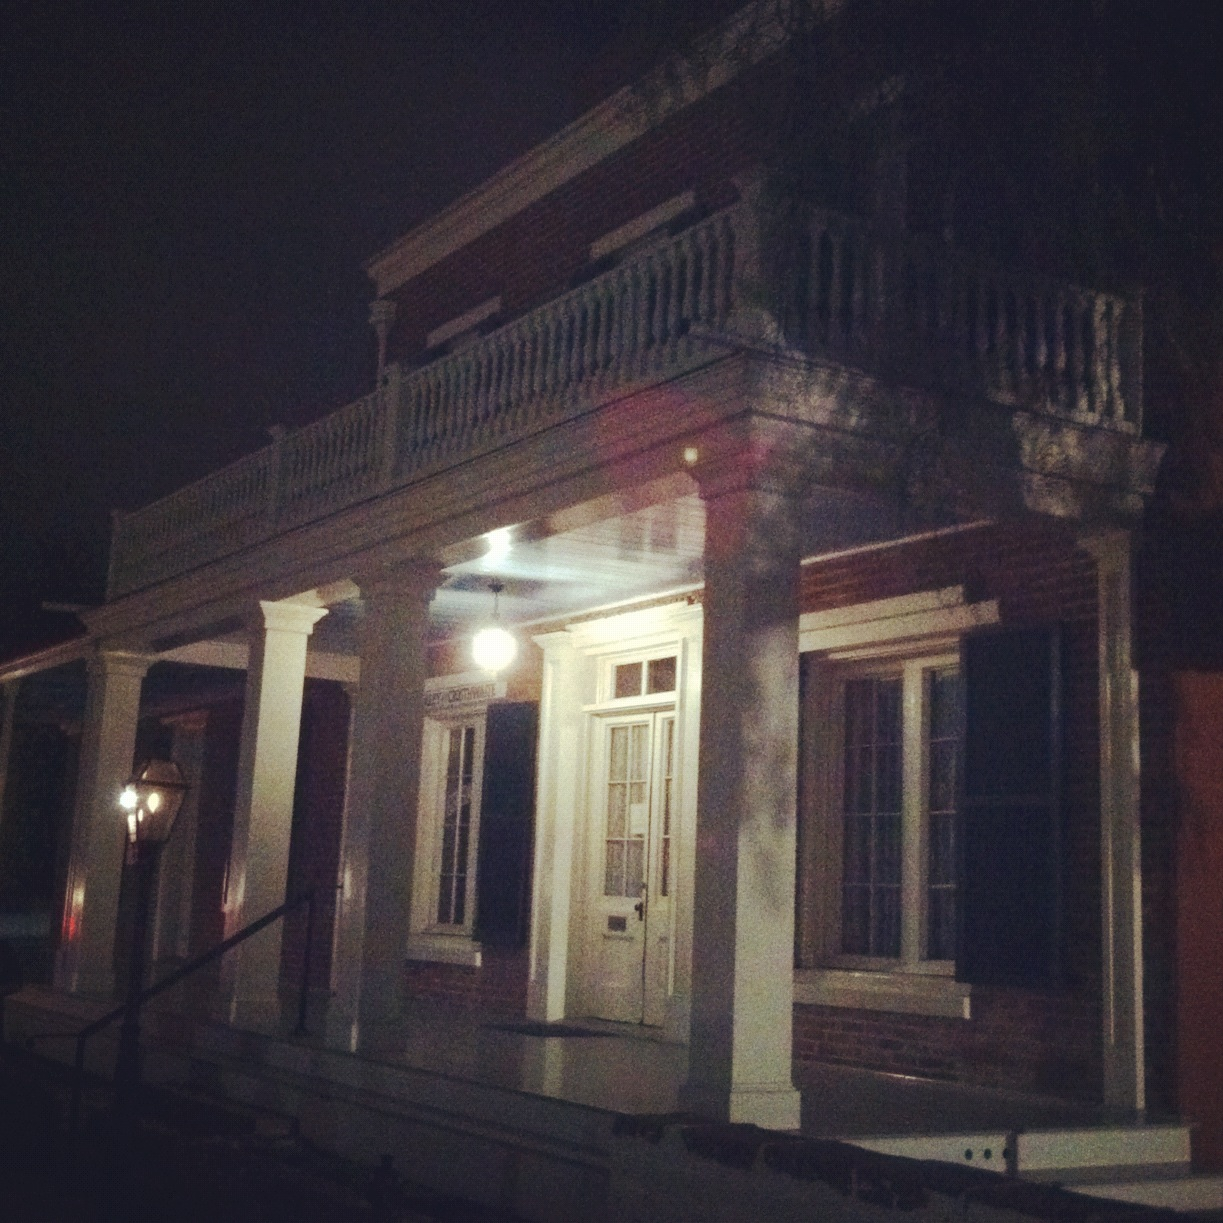 The Whaley House - The OG of Haunted Houses